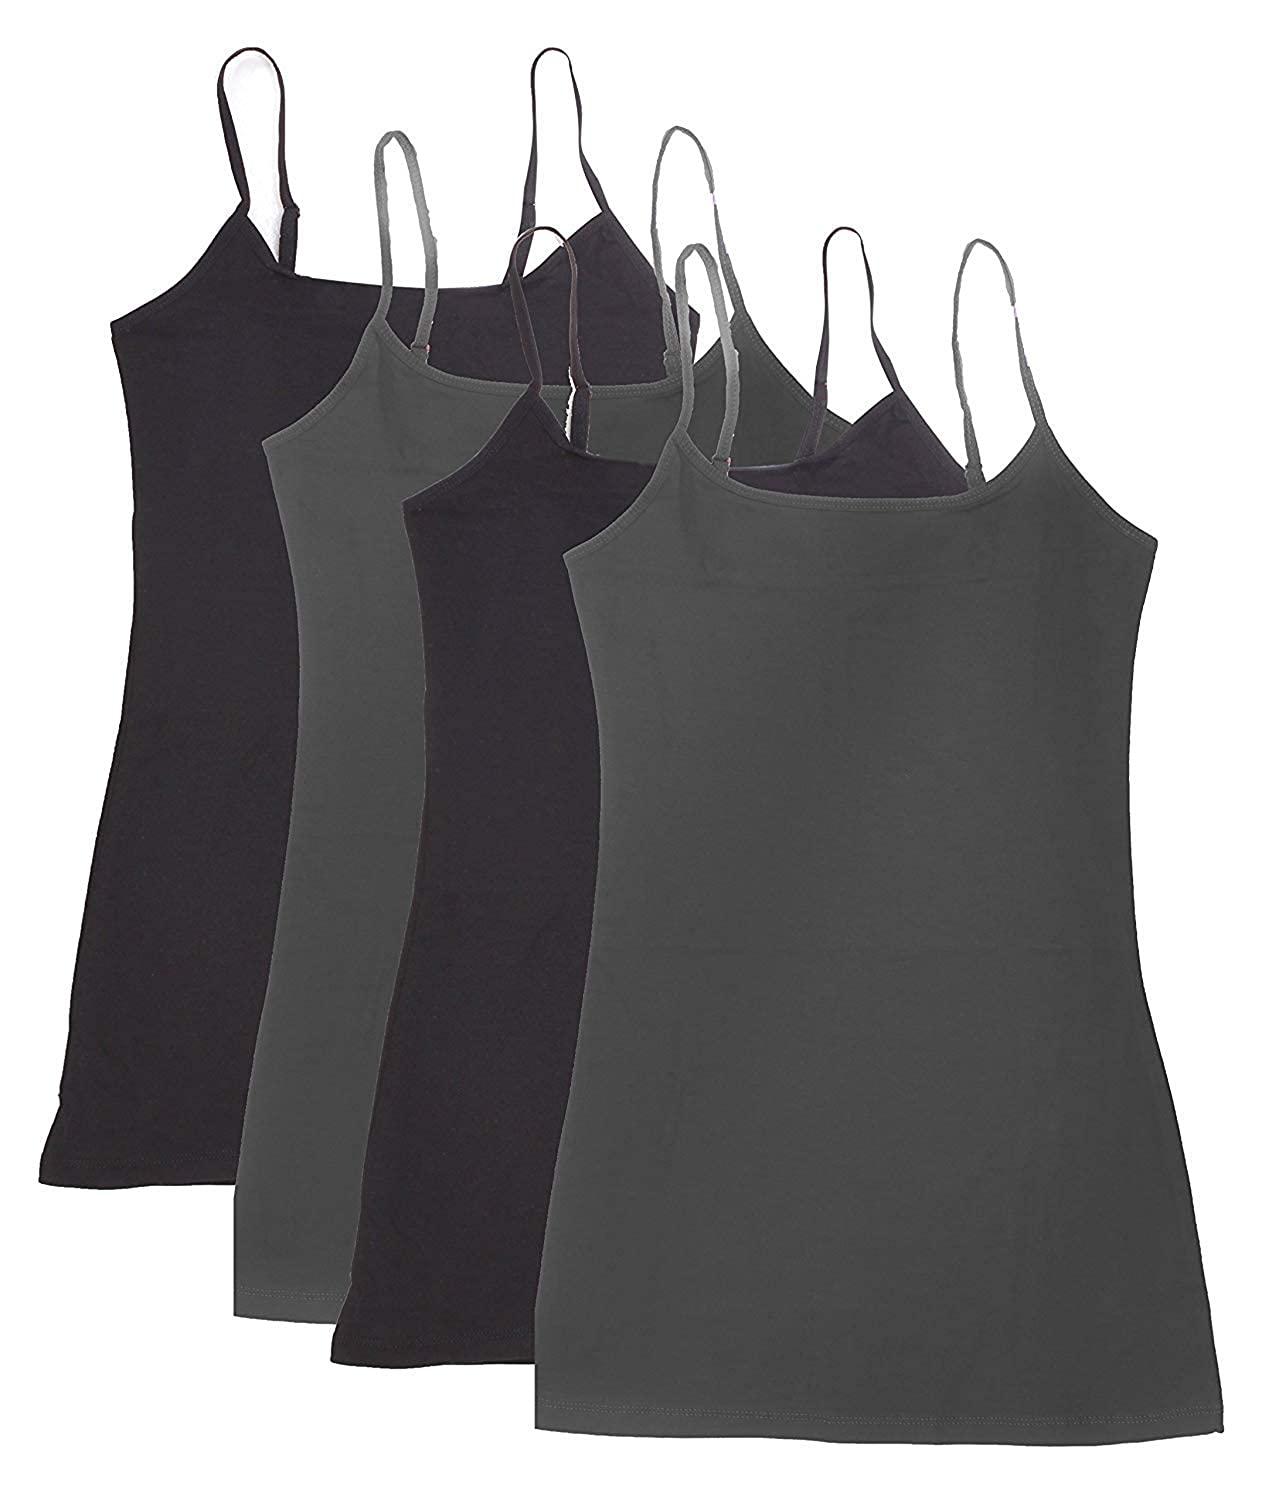 4 Pack Womens Basic Cotton Camisoles Tanks W//Adjustable Straps